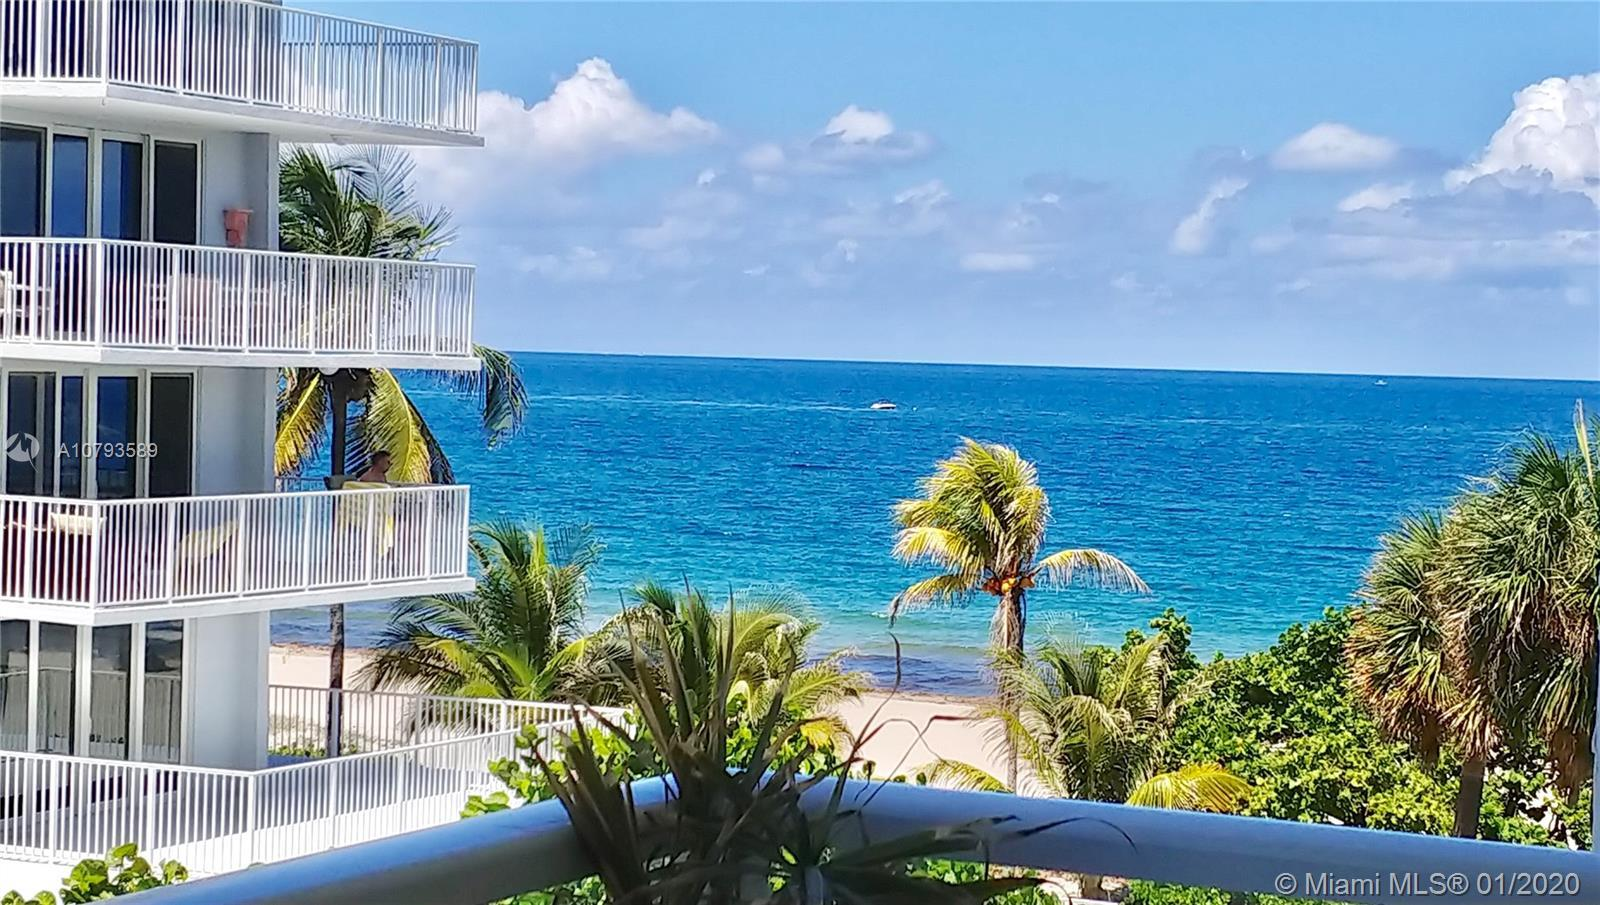 BEAUTIFULLY RENOVATED SPACIOUS 2/2 CONDO WITH OCEAN VIEW, A GLASS BALCONY, OCEAN SOUNDS, THE UNIT FE